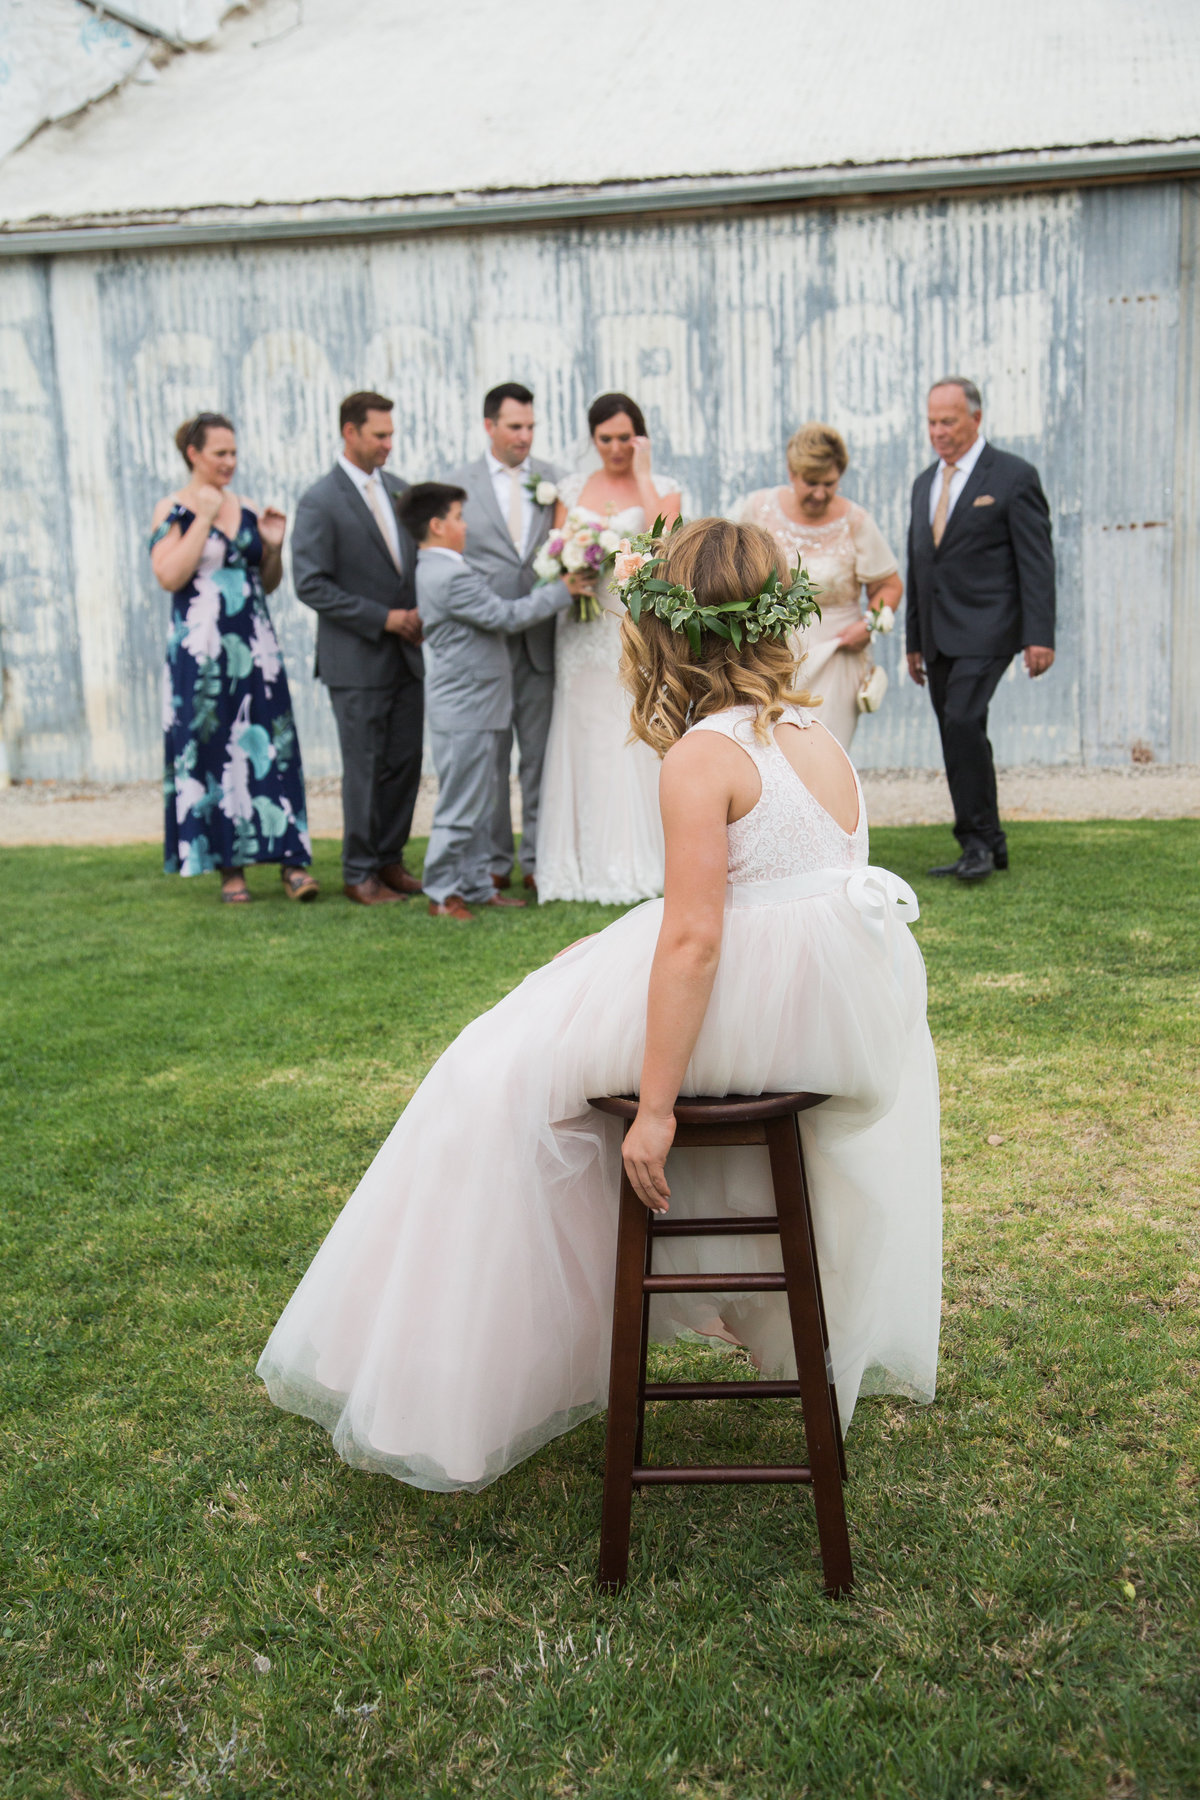 Flower girl sits infront of family formal photos at 1880 Union Hotel Wedding